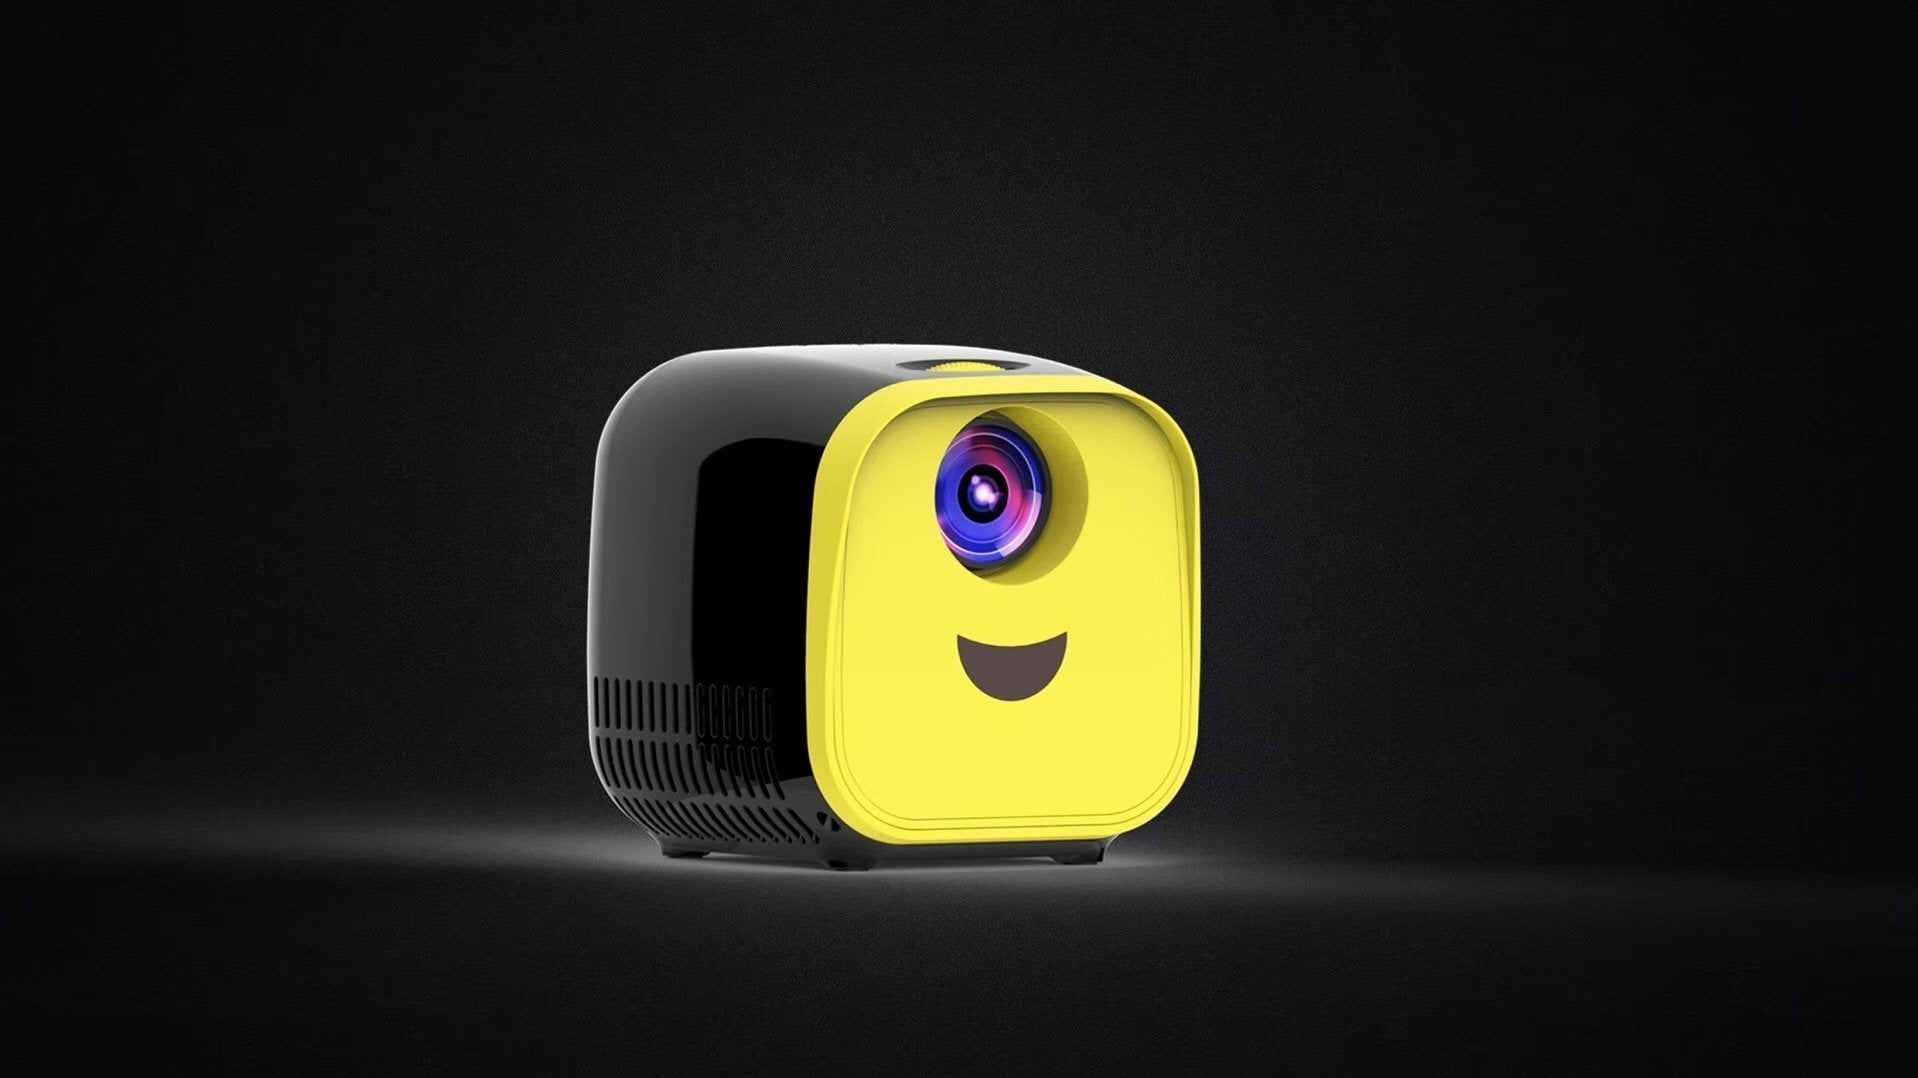 NovaTek Mini Projector 1080P HD